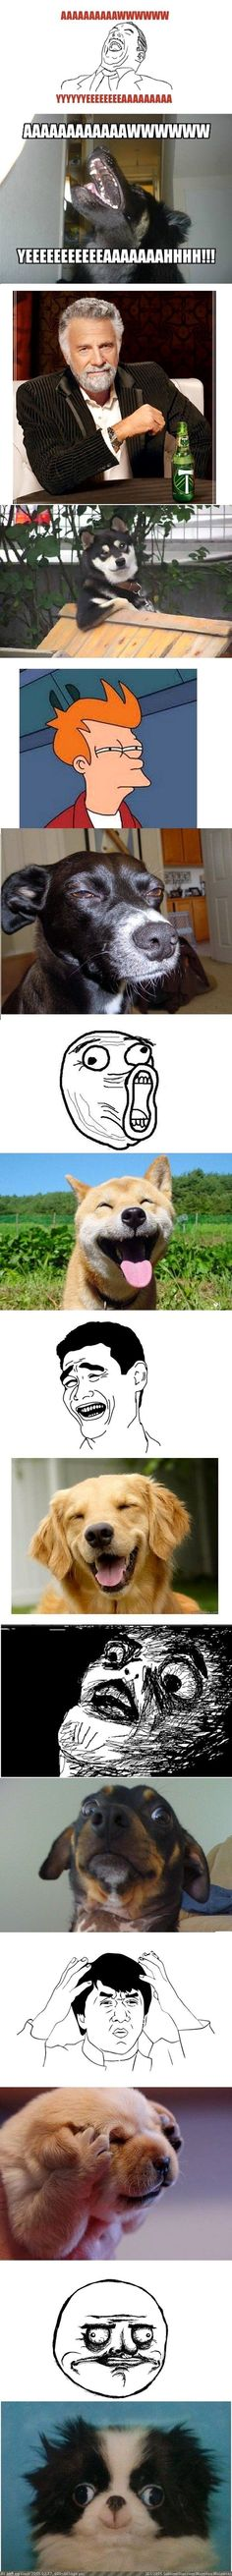 Internet Memes as Dog Photos (funny, real-life dogs)